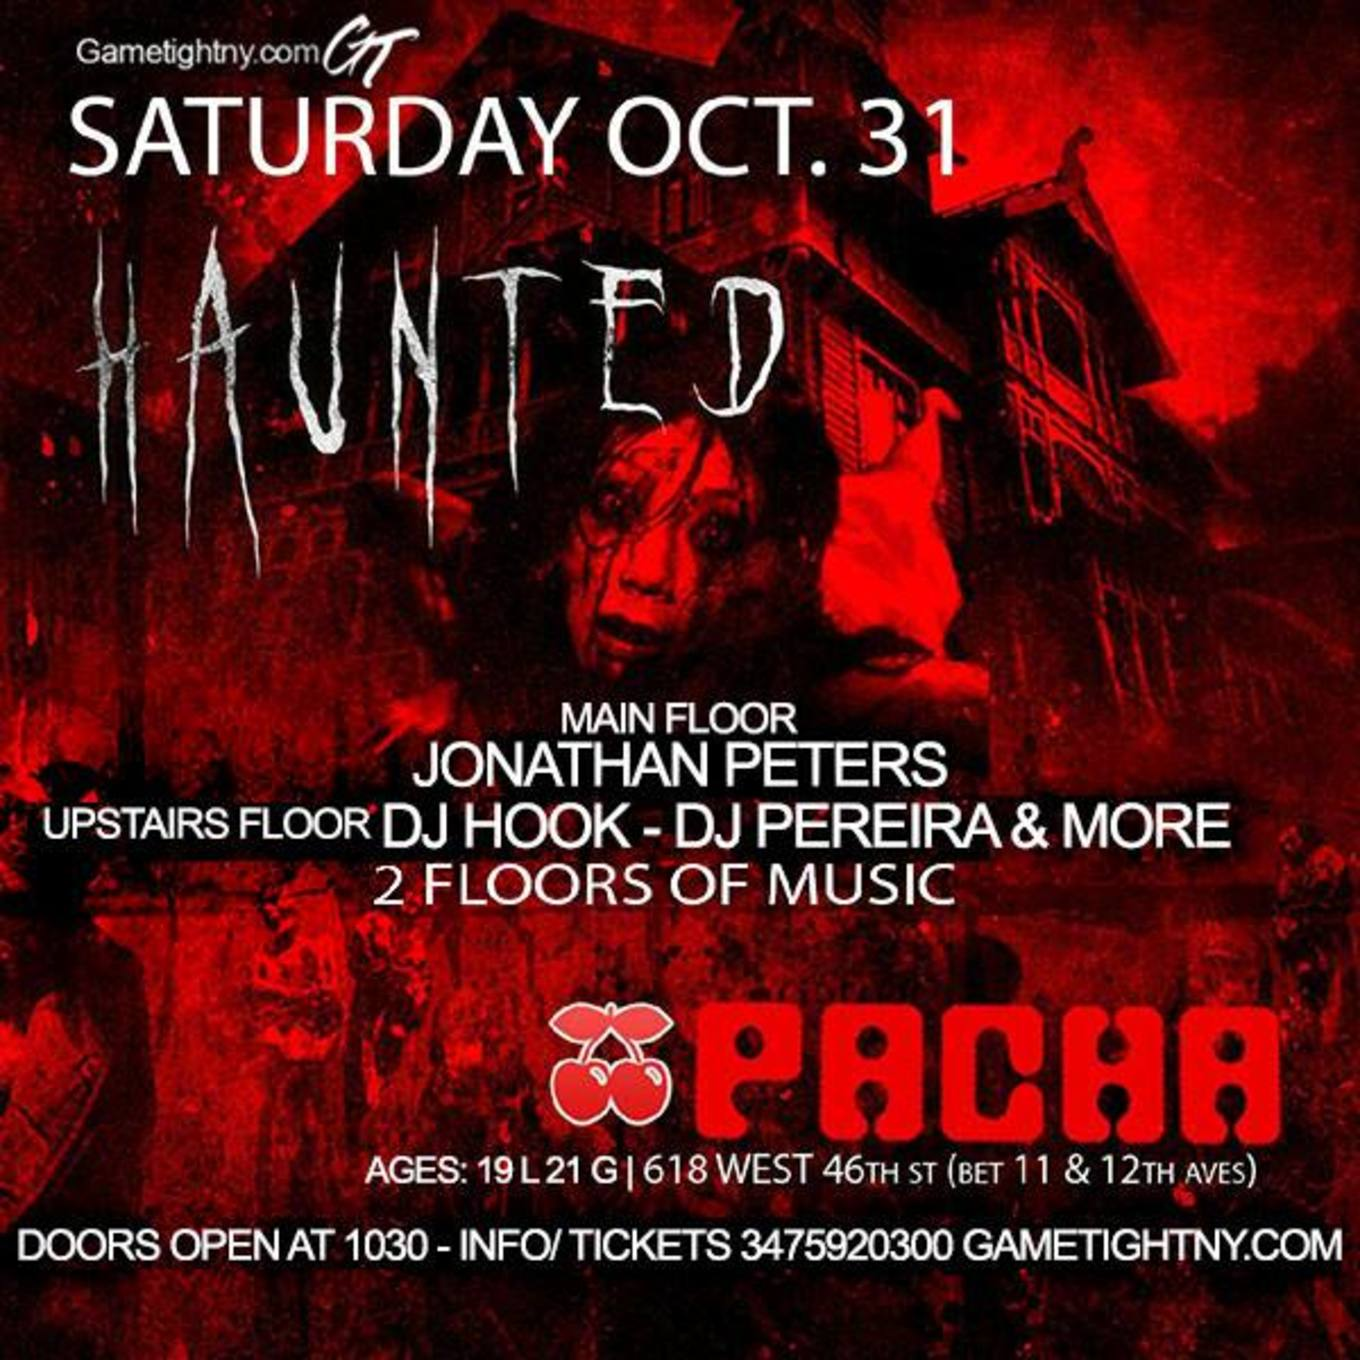 halloween pacha nyc party 2015 buy tickets now - pacha, new york, ny